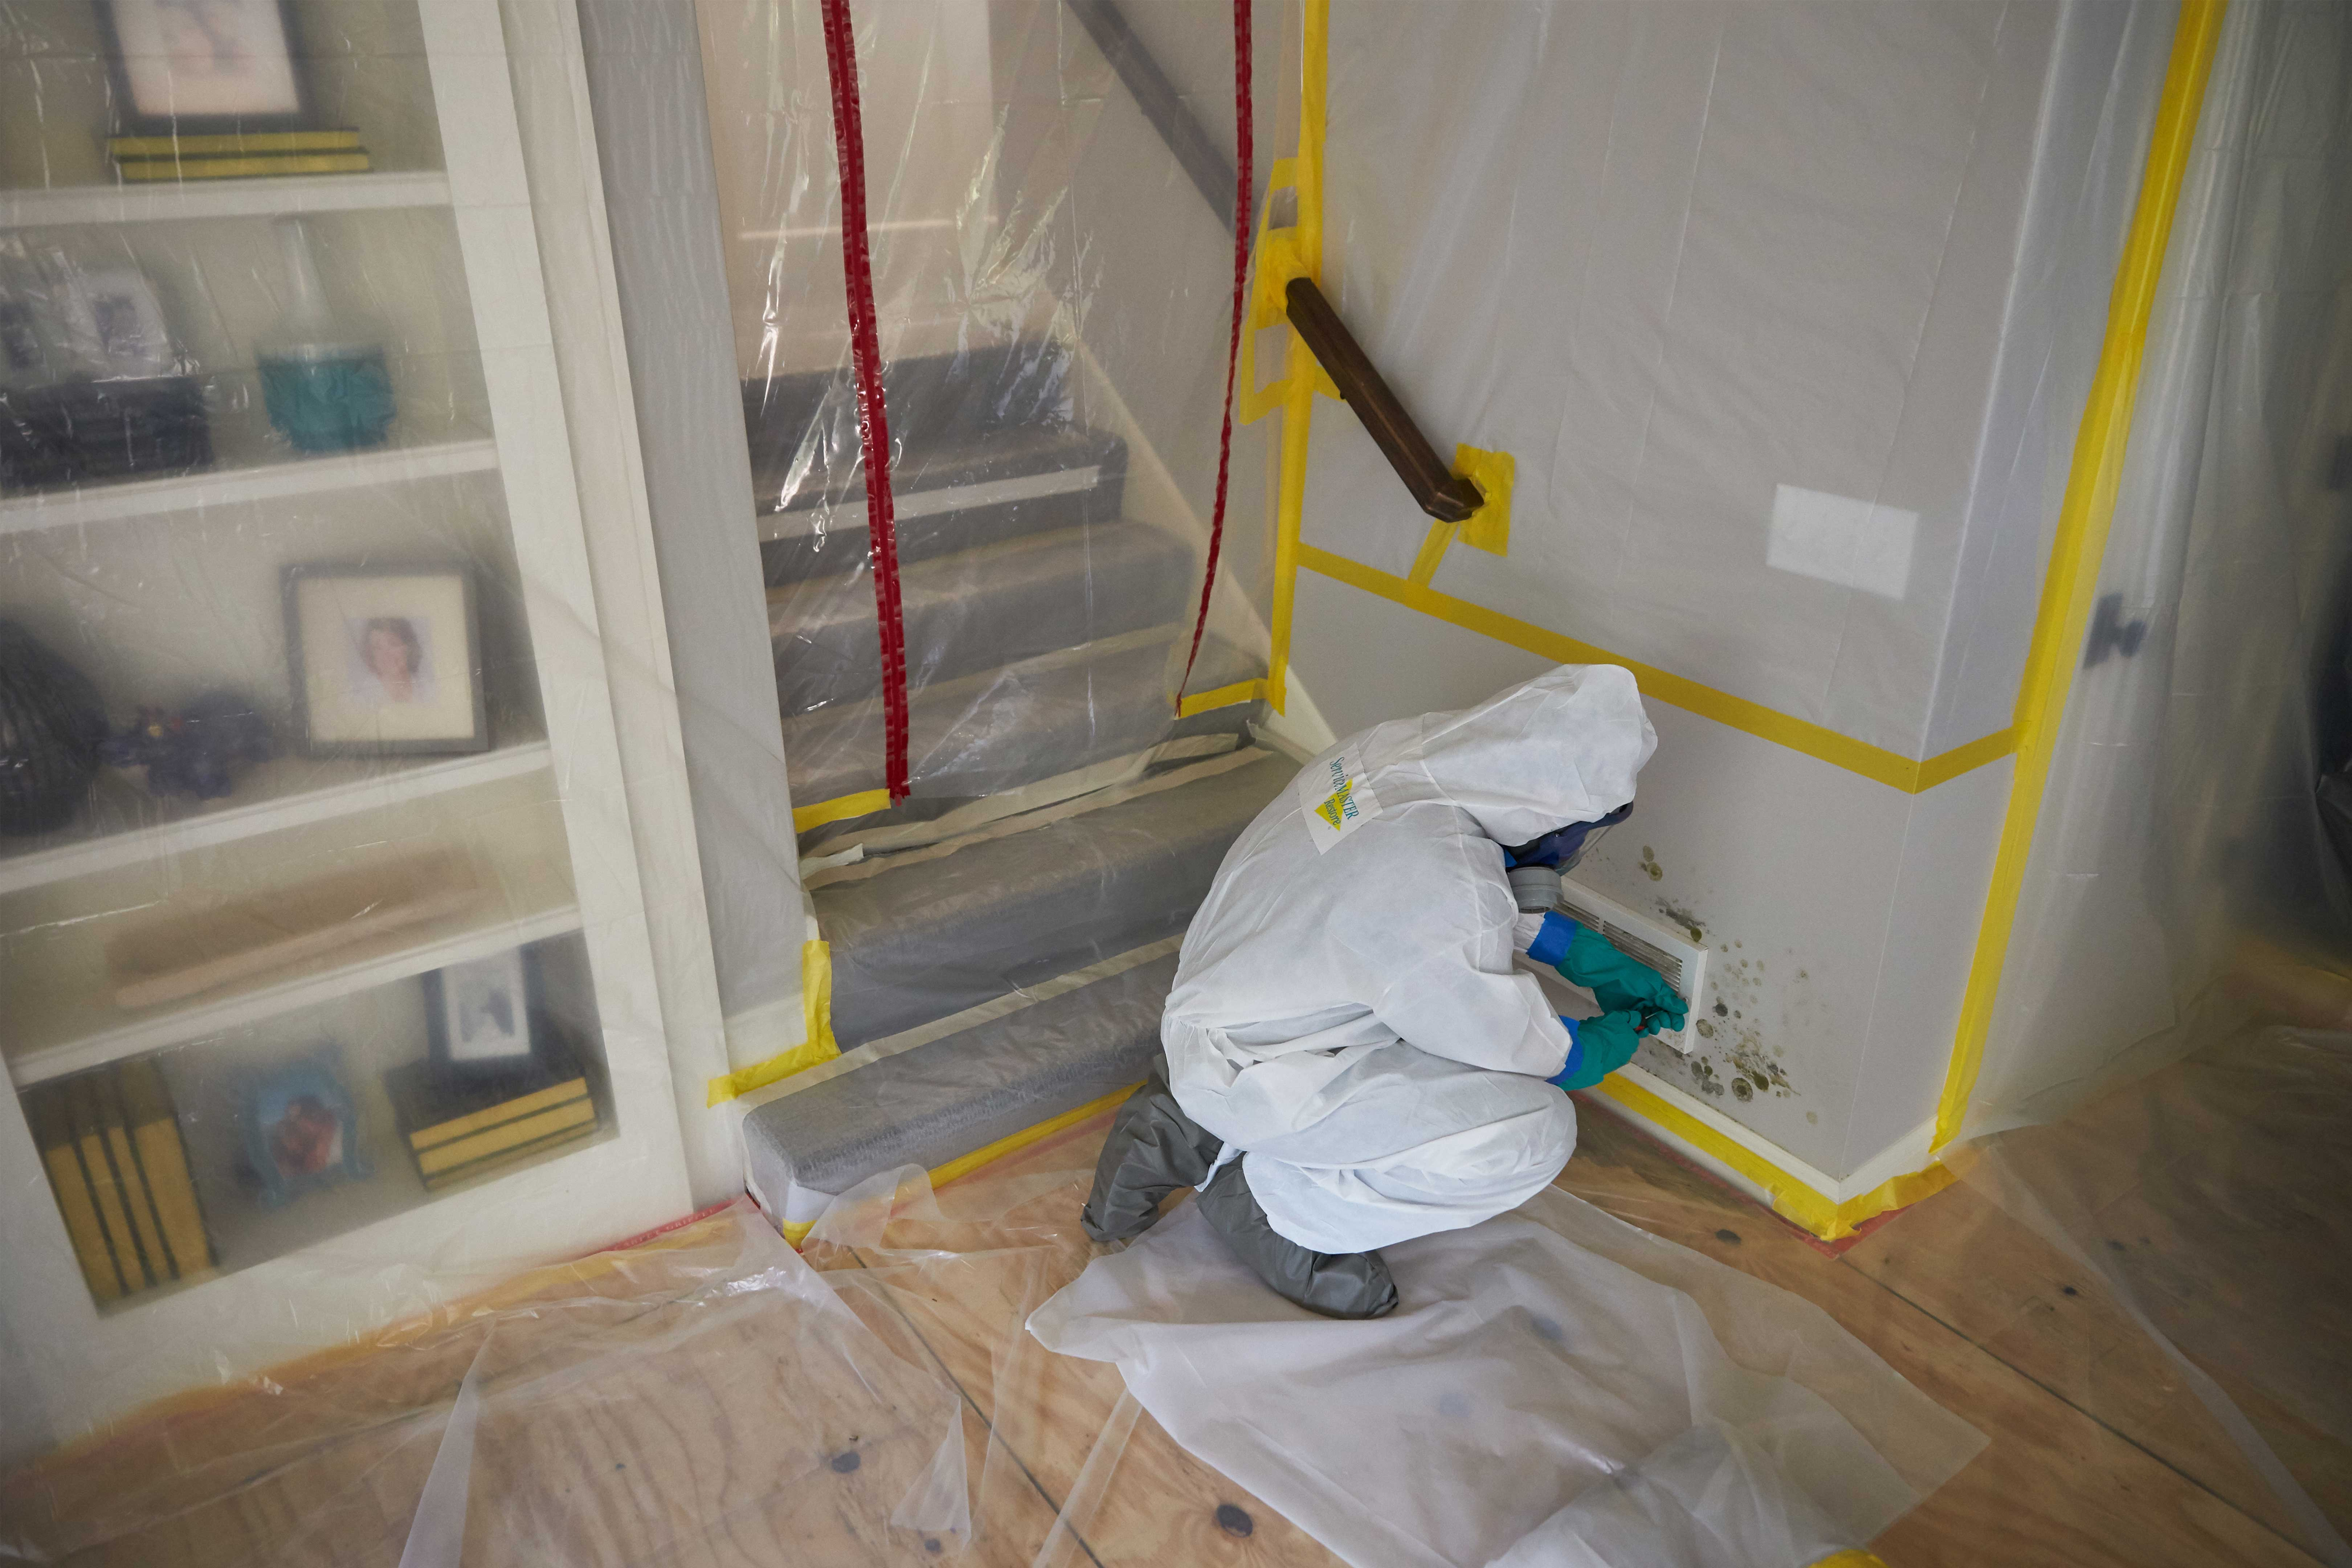 image of equipment used to remove mold from a home